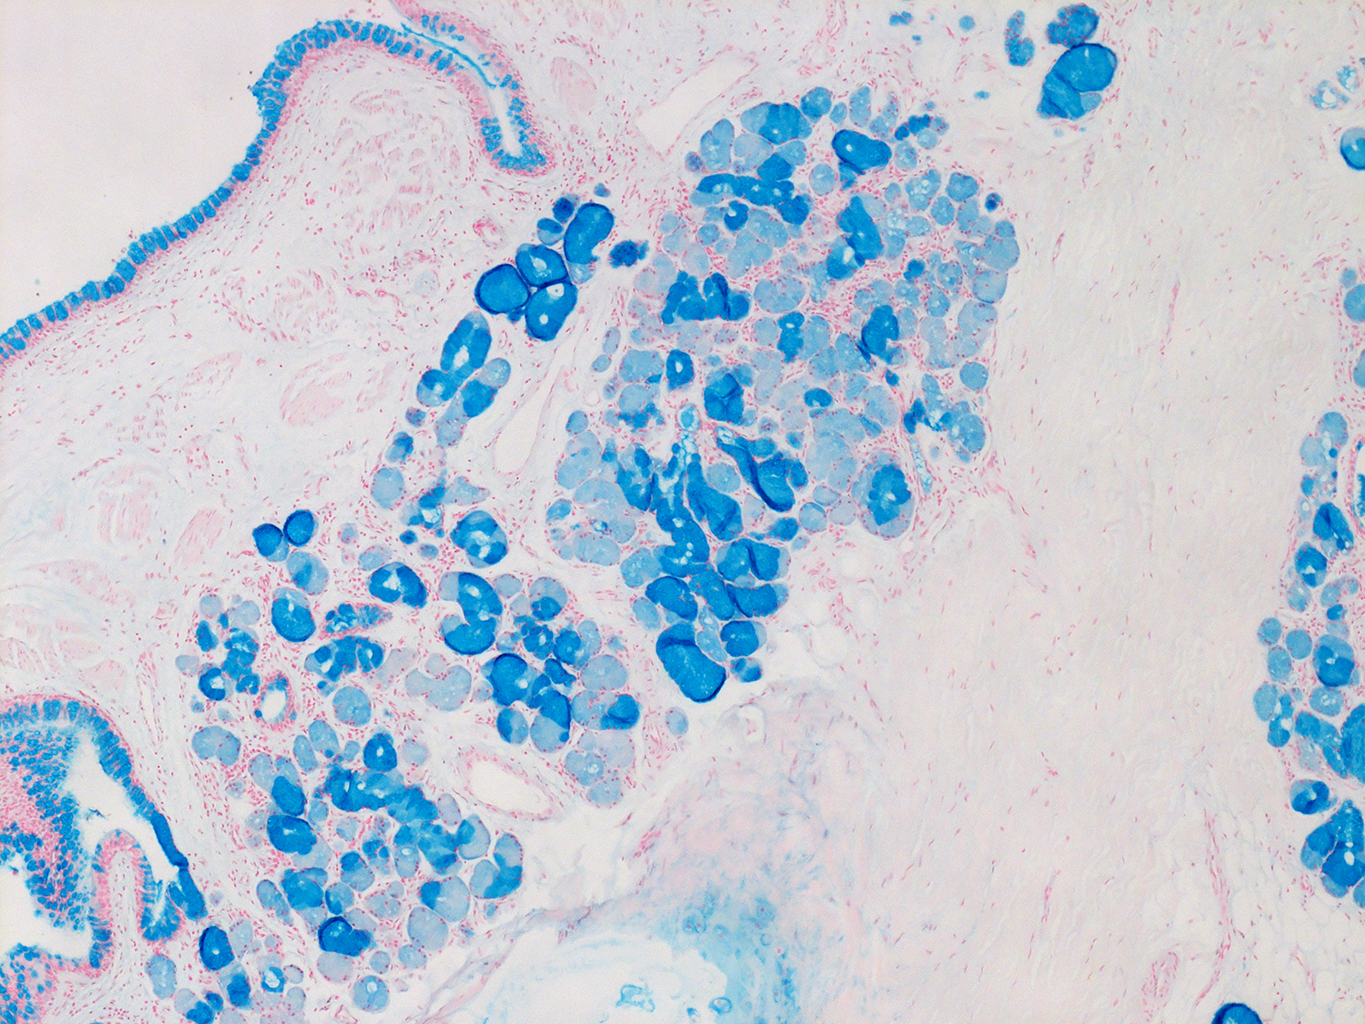 Alcian Blue Staining of 27 Year-Old Human Donor 3